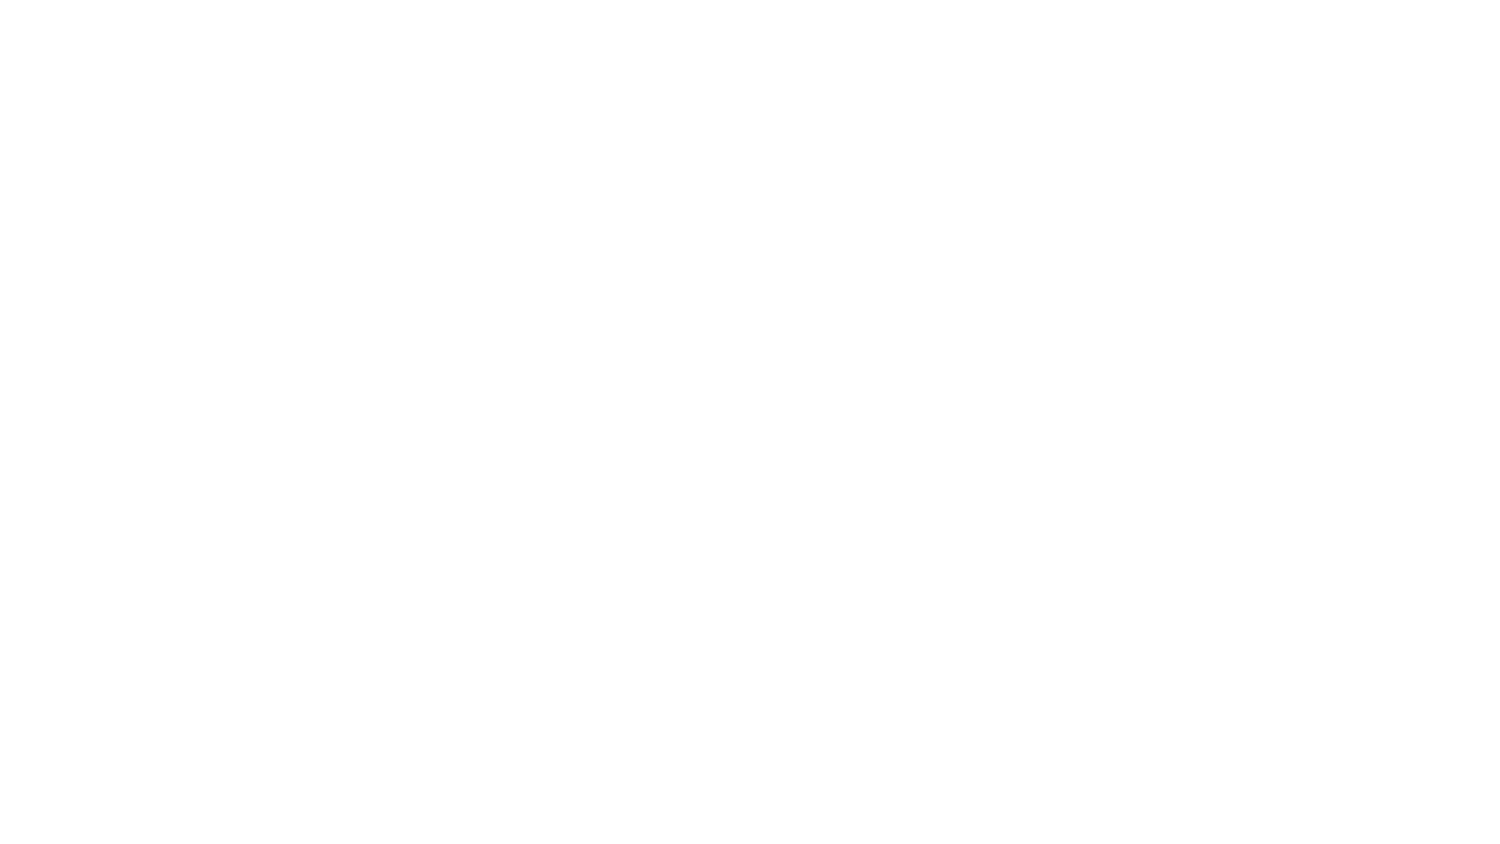 Stillbrook Productions